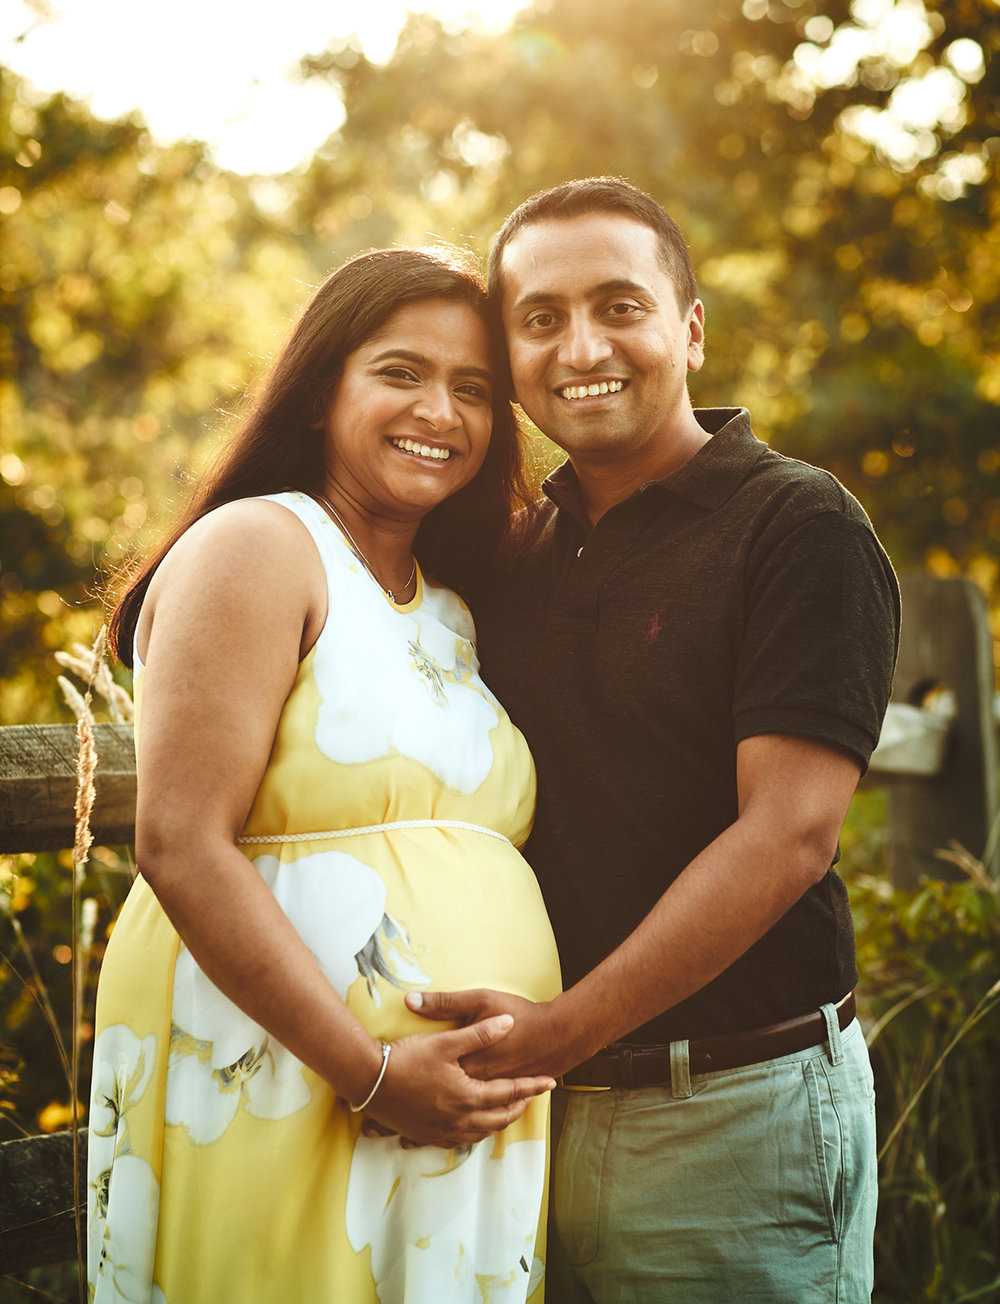 170820_FamilyPhotography_NJMaternityPhotographer_By_BriJohnsonWeddings_0005.jpg